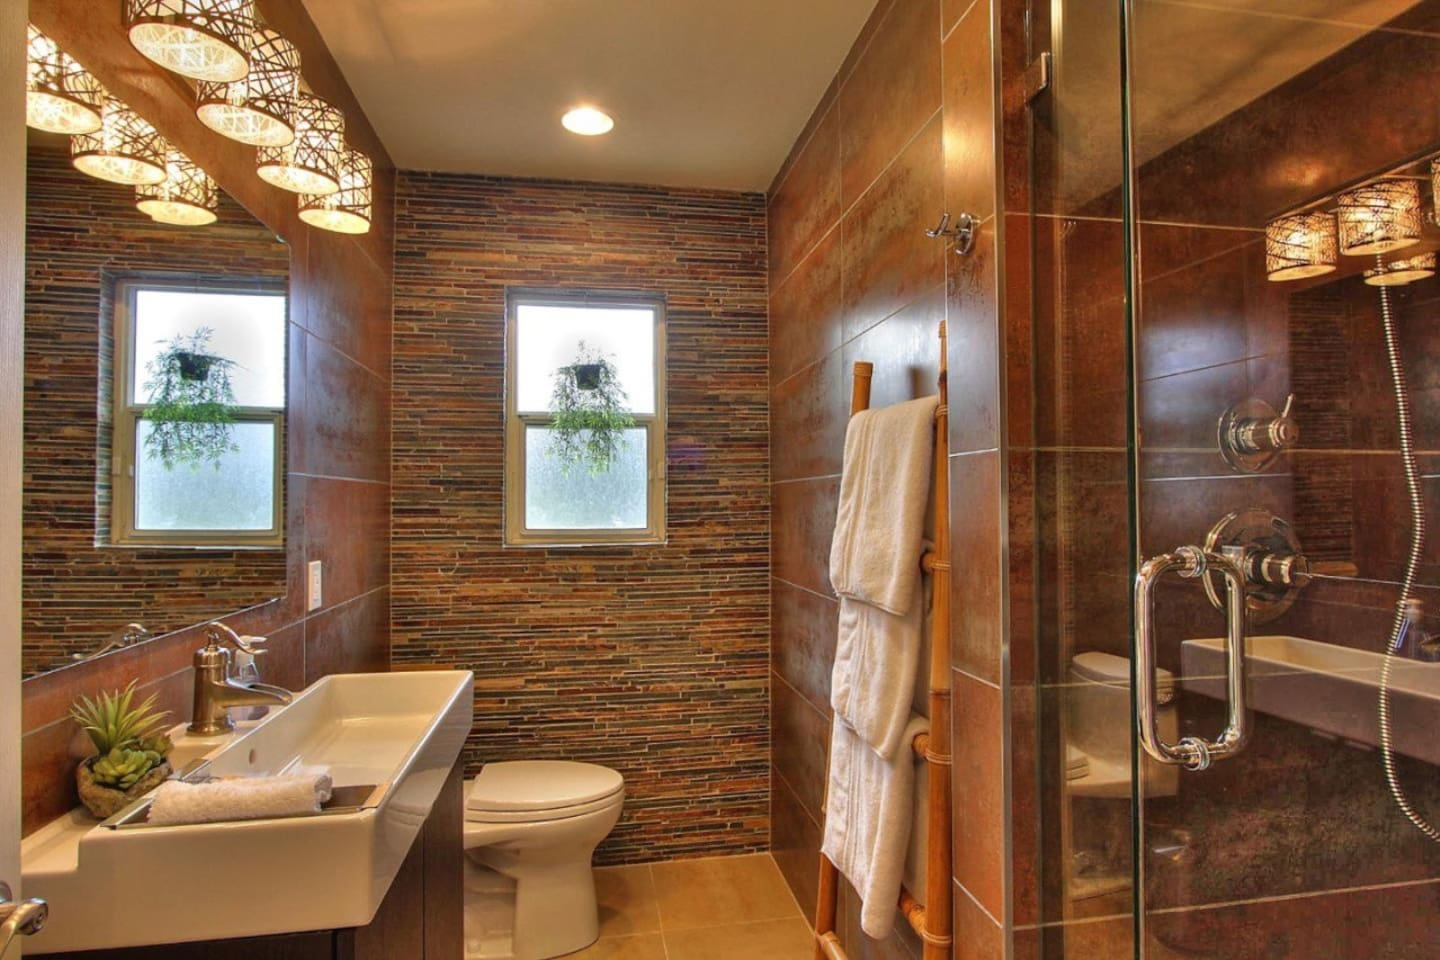 Private bath with glass shower (not ensuite)